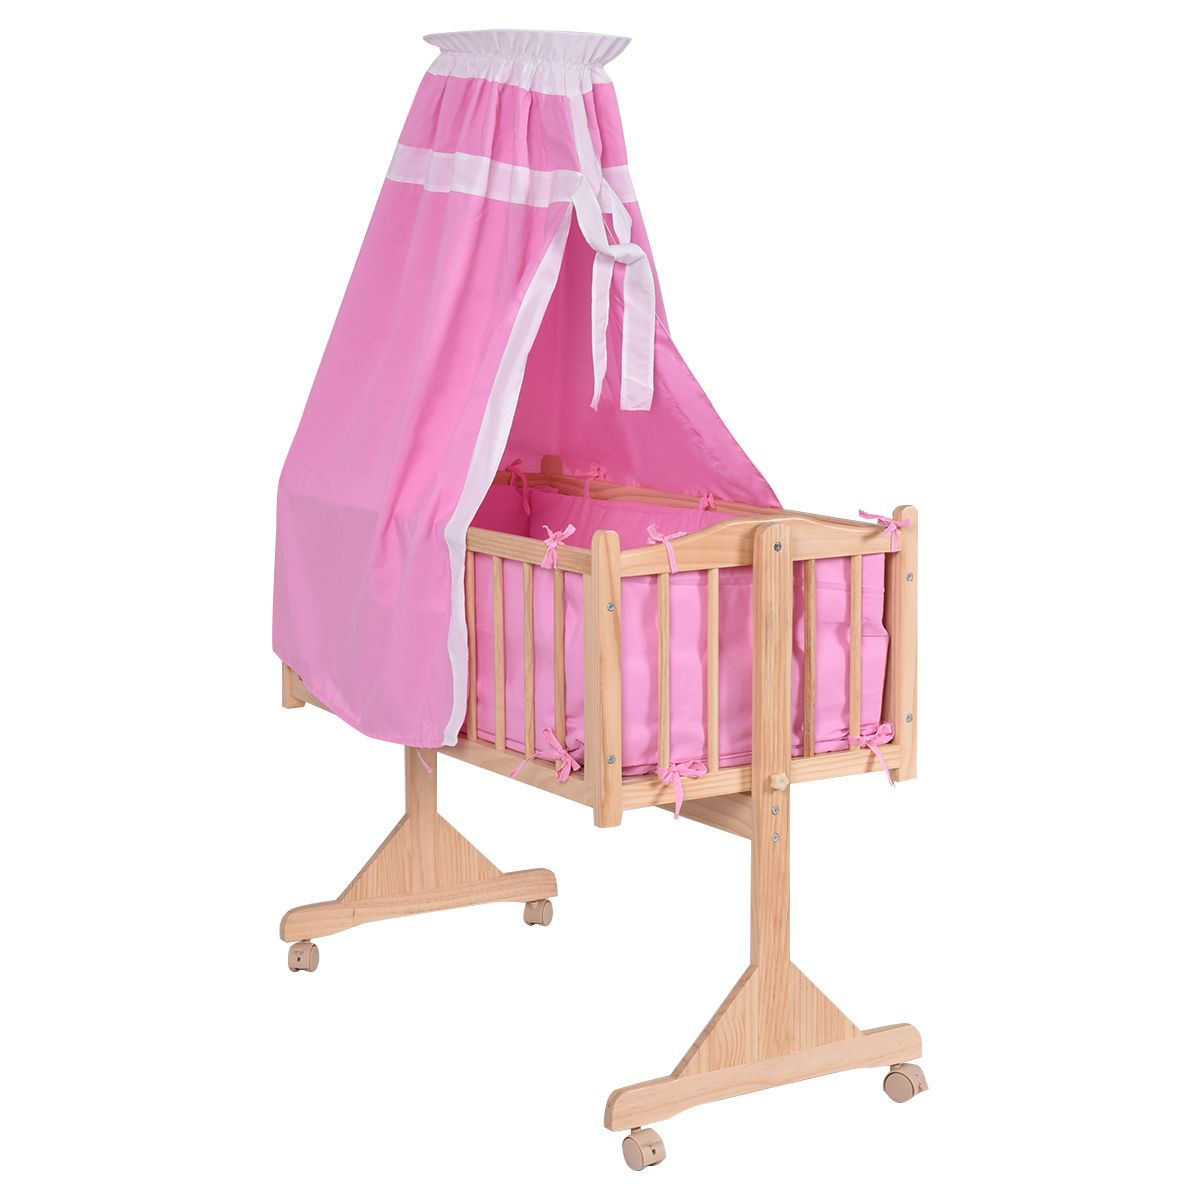 Baby Cradle Dimensions Details About Wood Baby Cradle Rocking Crib Newborn Bassinet